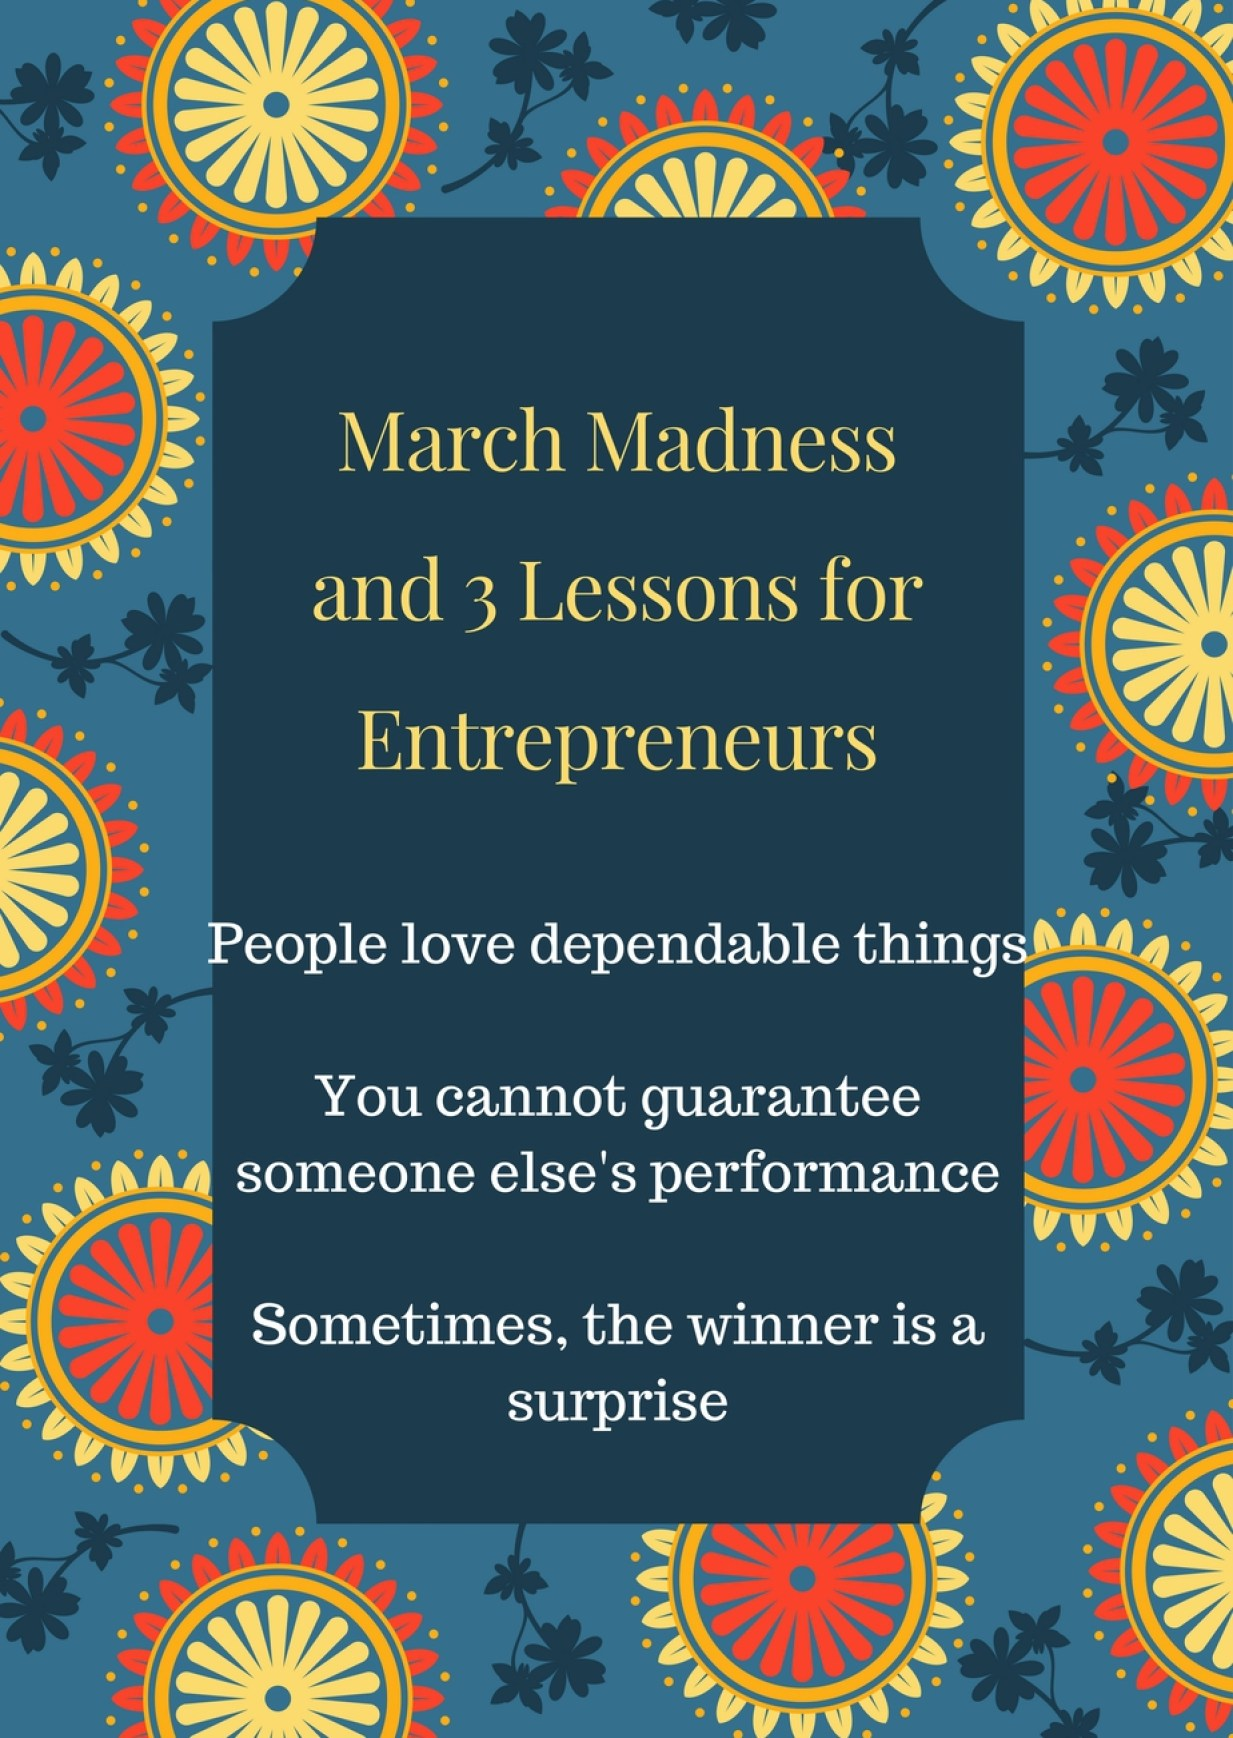 March Madness and 3 Lessons for Entrepreneurs